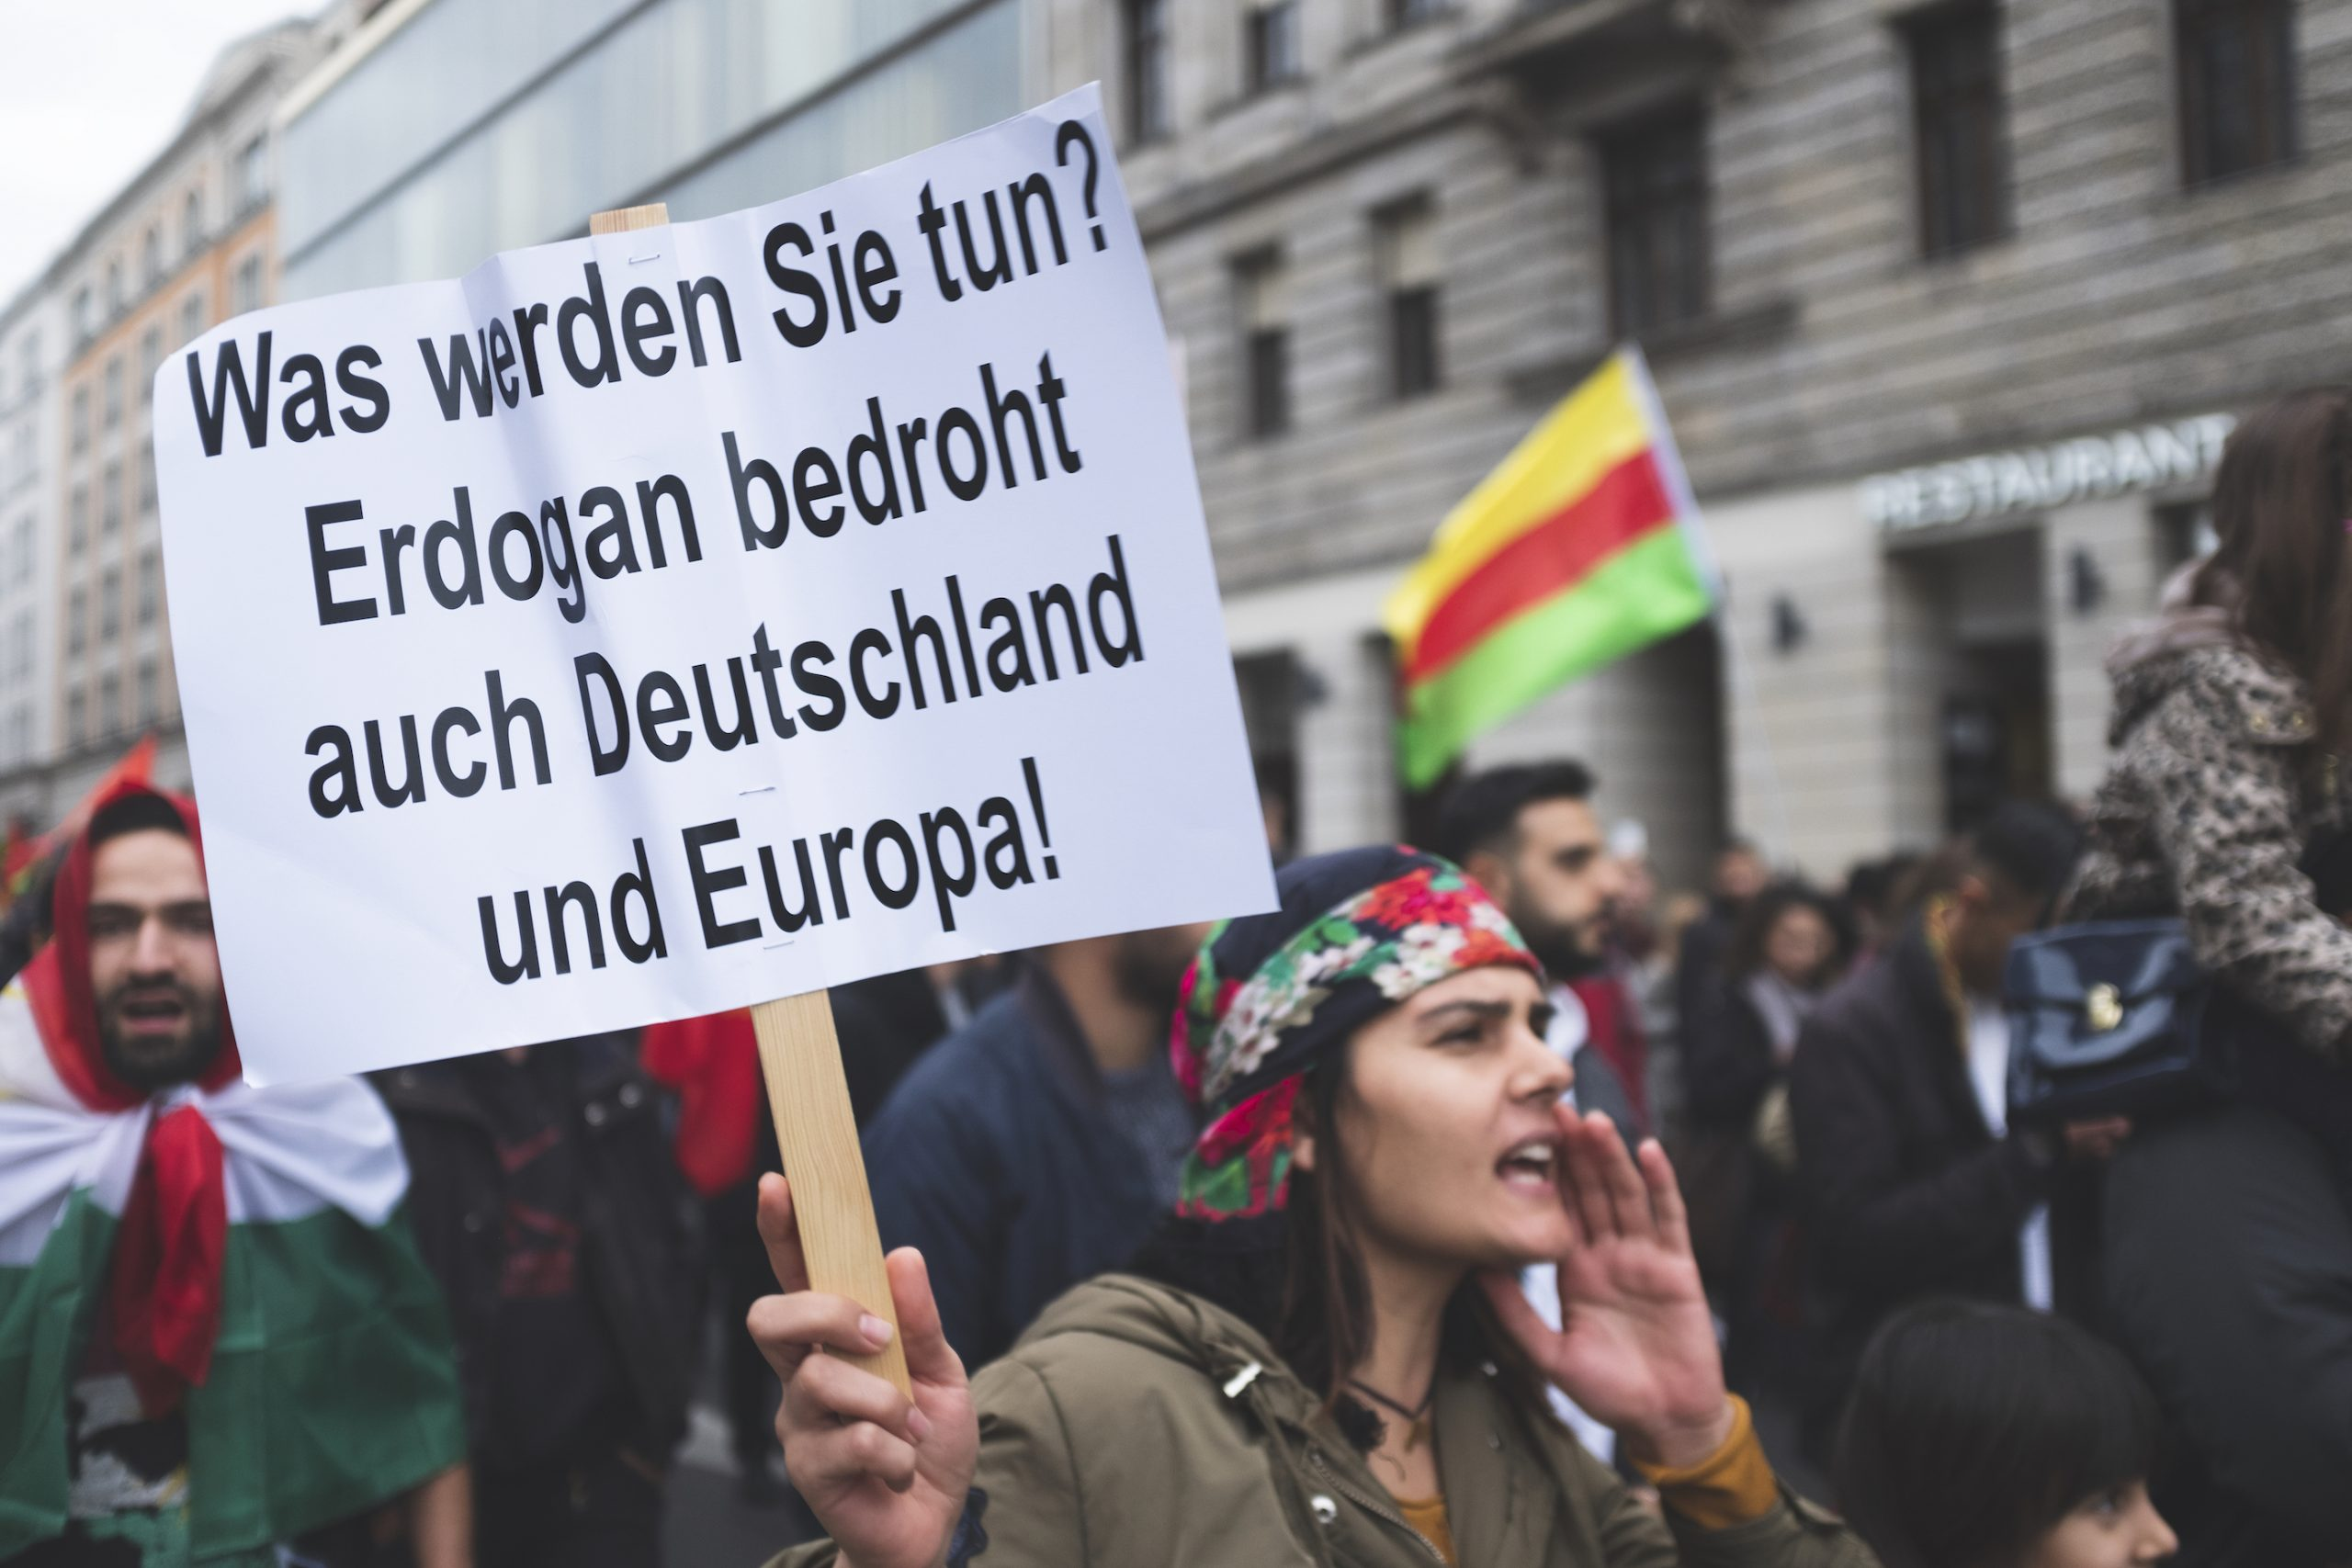 Erdogan is a threat to Germany and Europe.